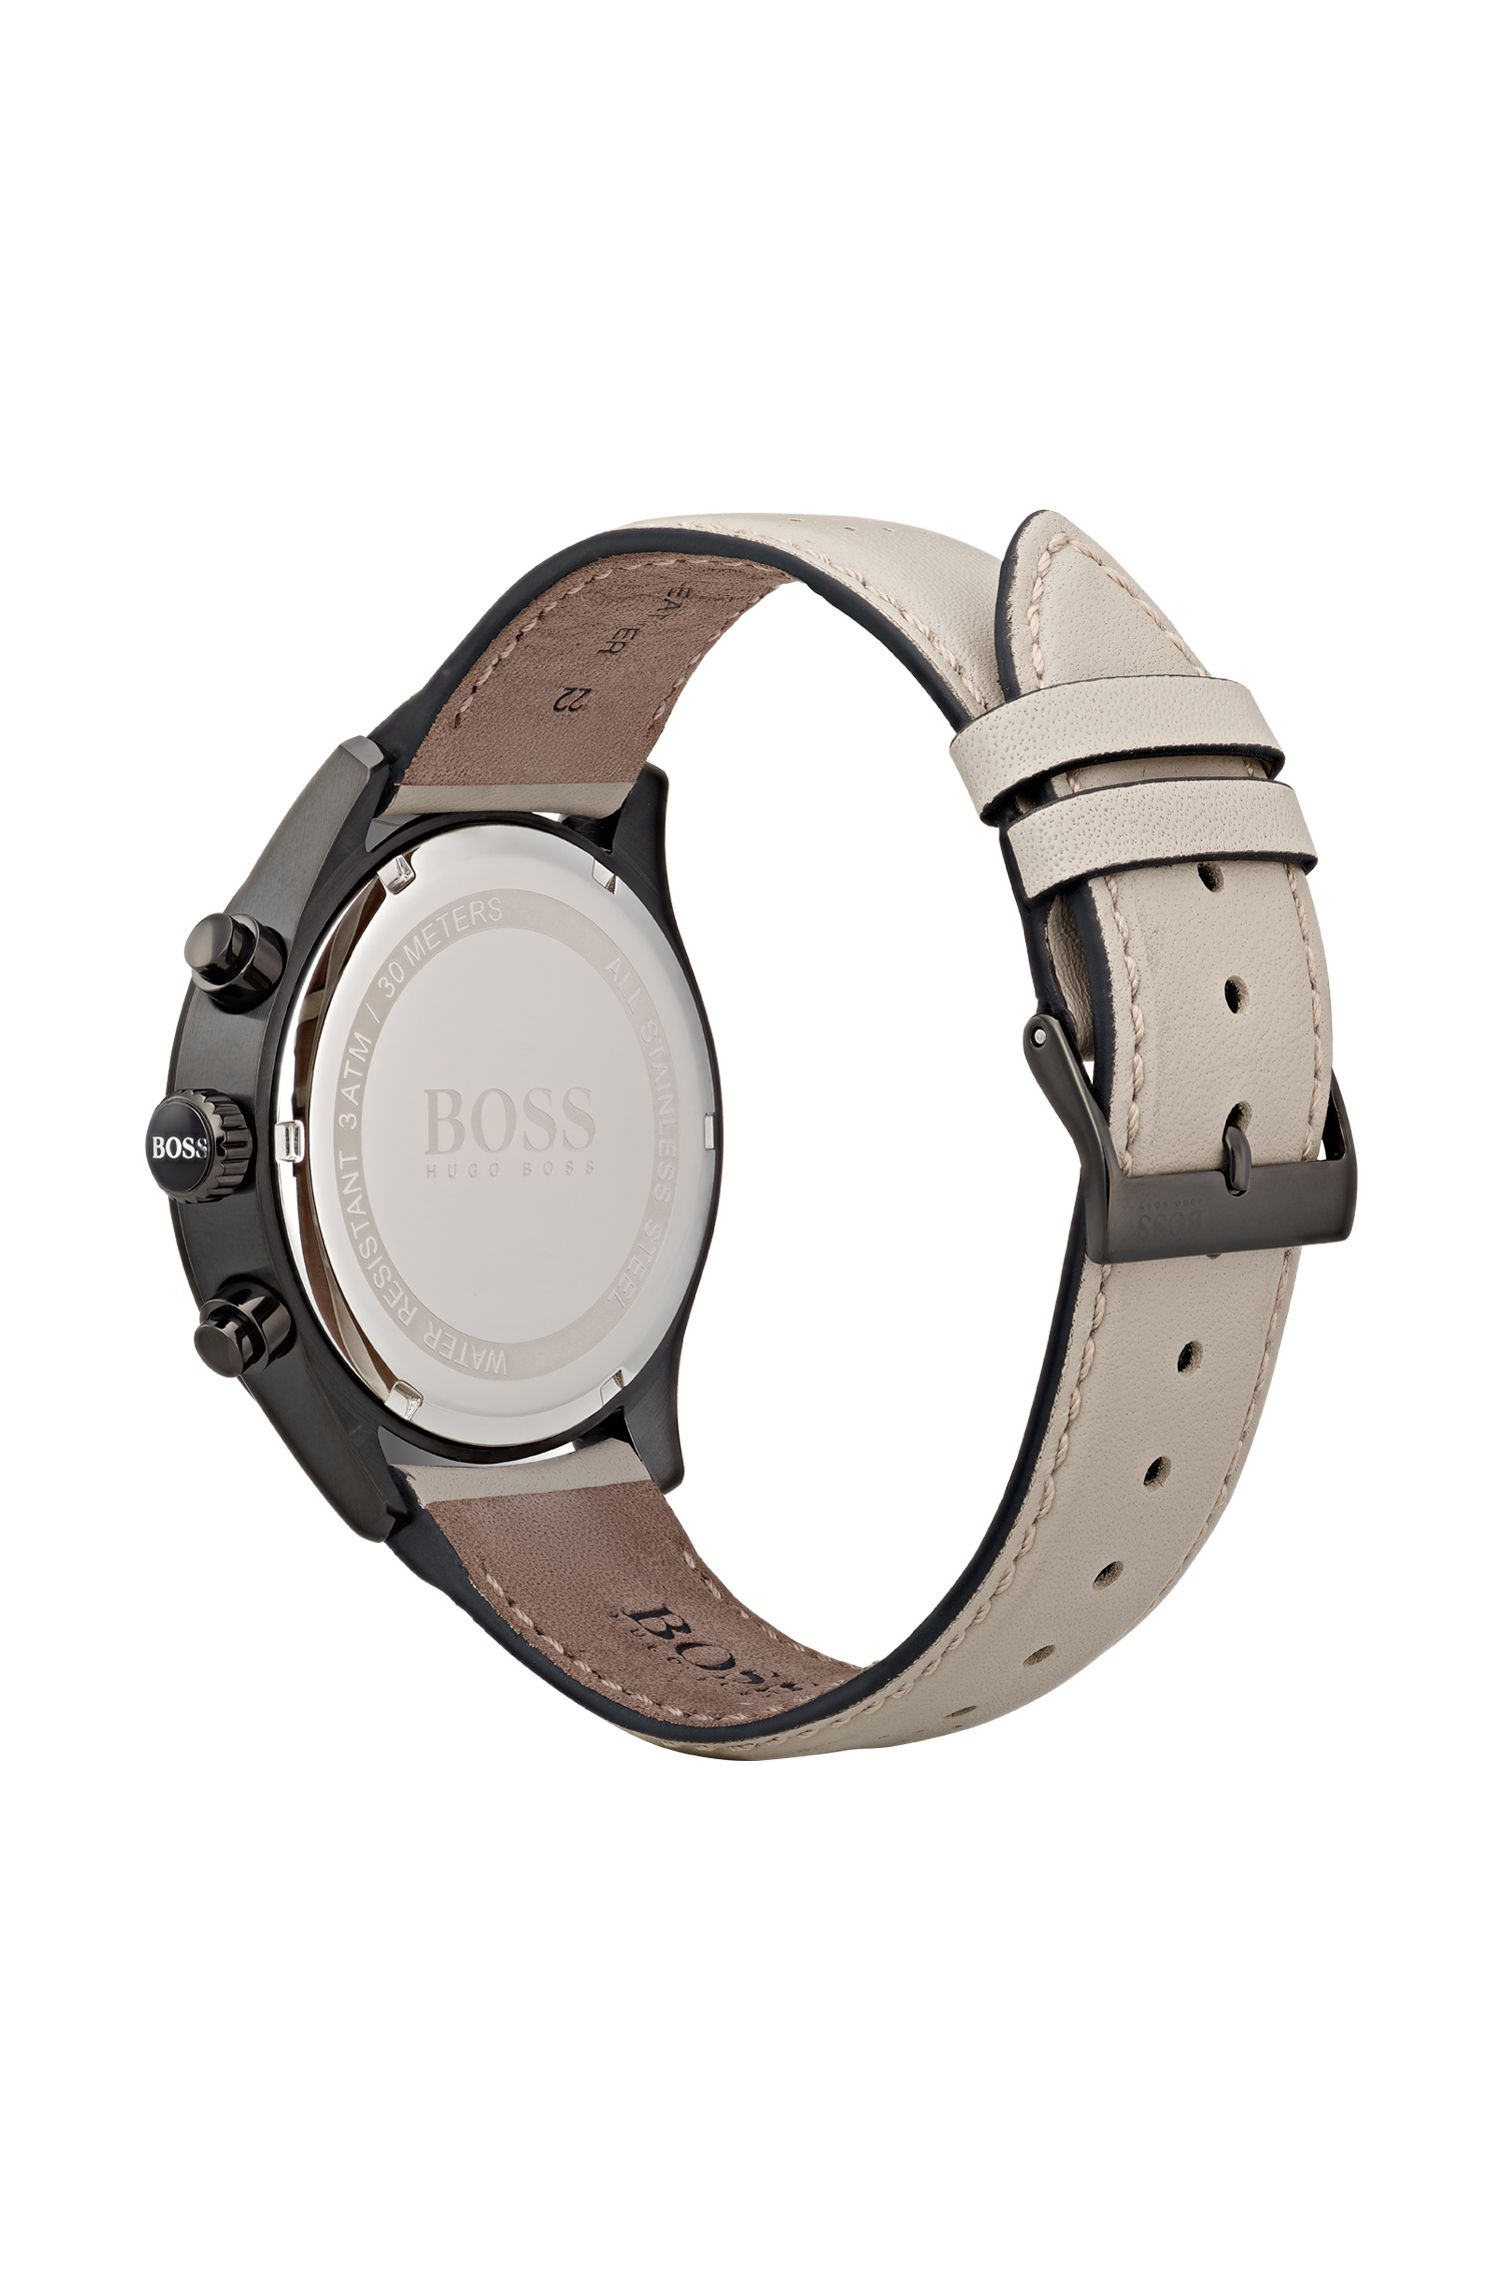 Black-plated stainless-steel watch with beige perforated leather strap